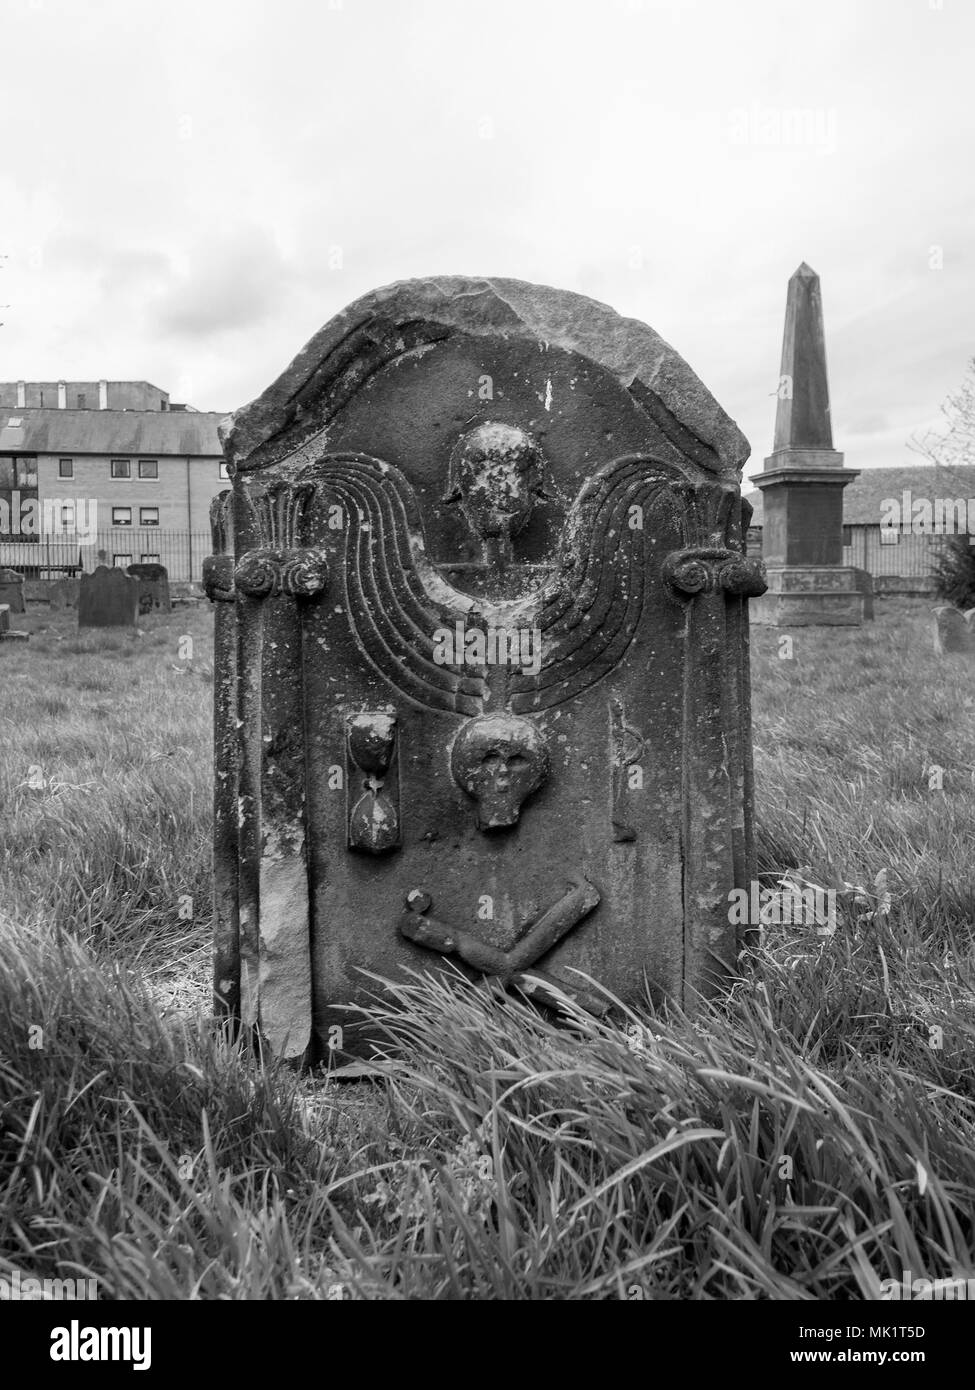 Glasgow scotland april 23rd 2018 a black and white photograph of an angel a skull and bone cross on a gravestone at the govan old parish church